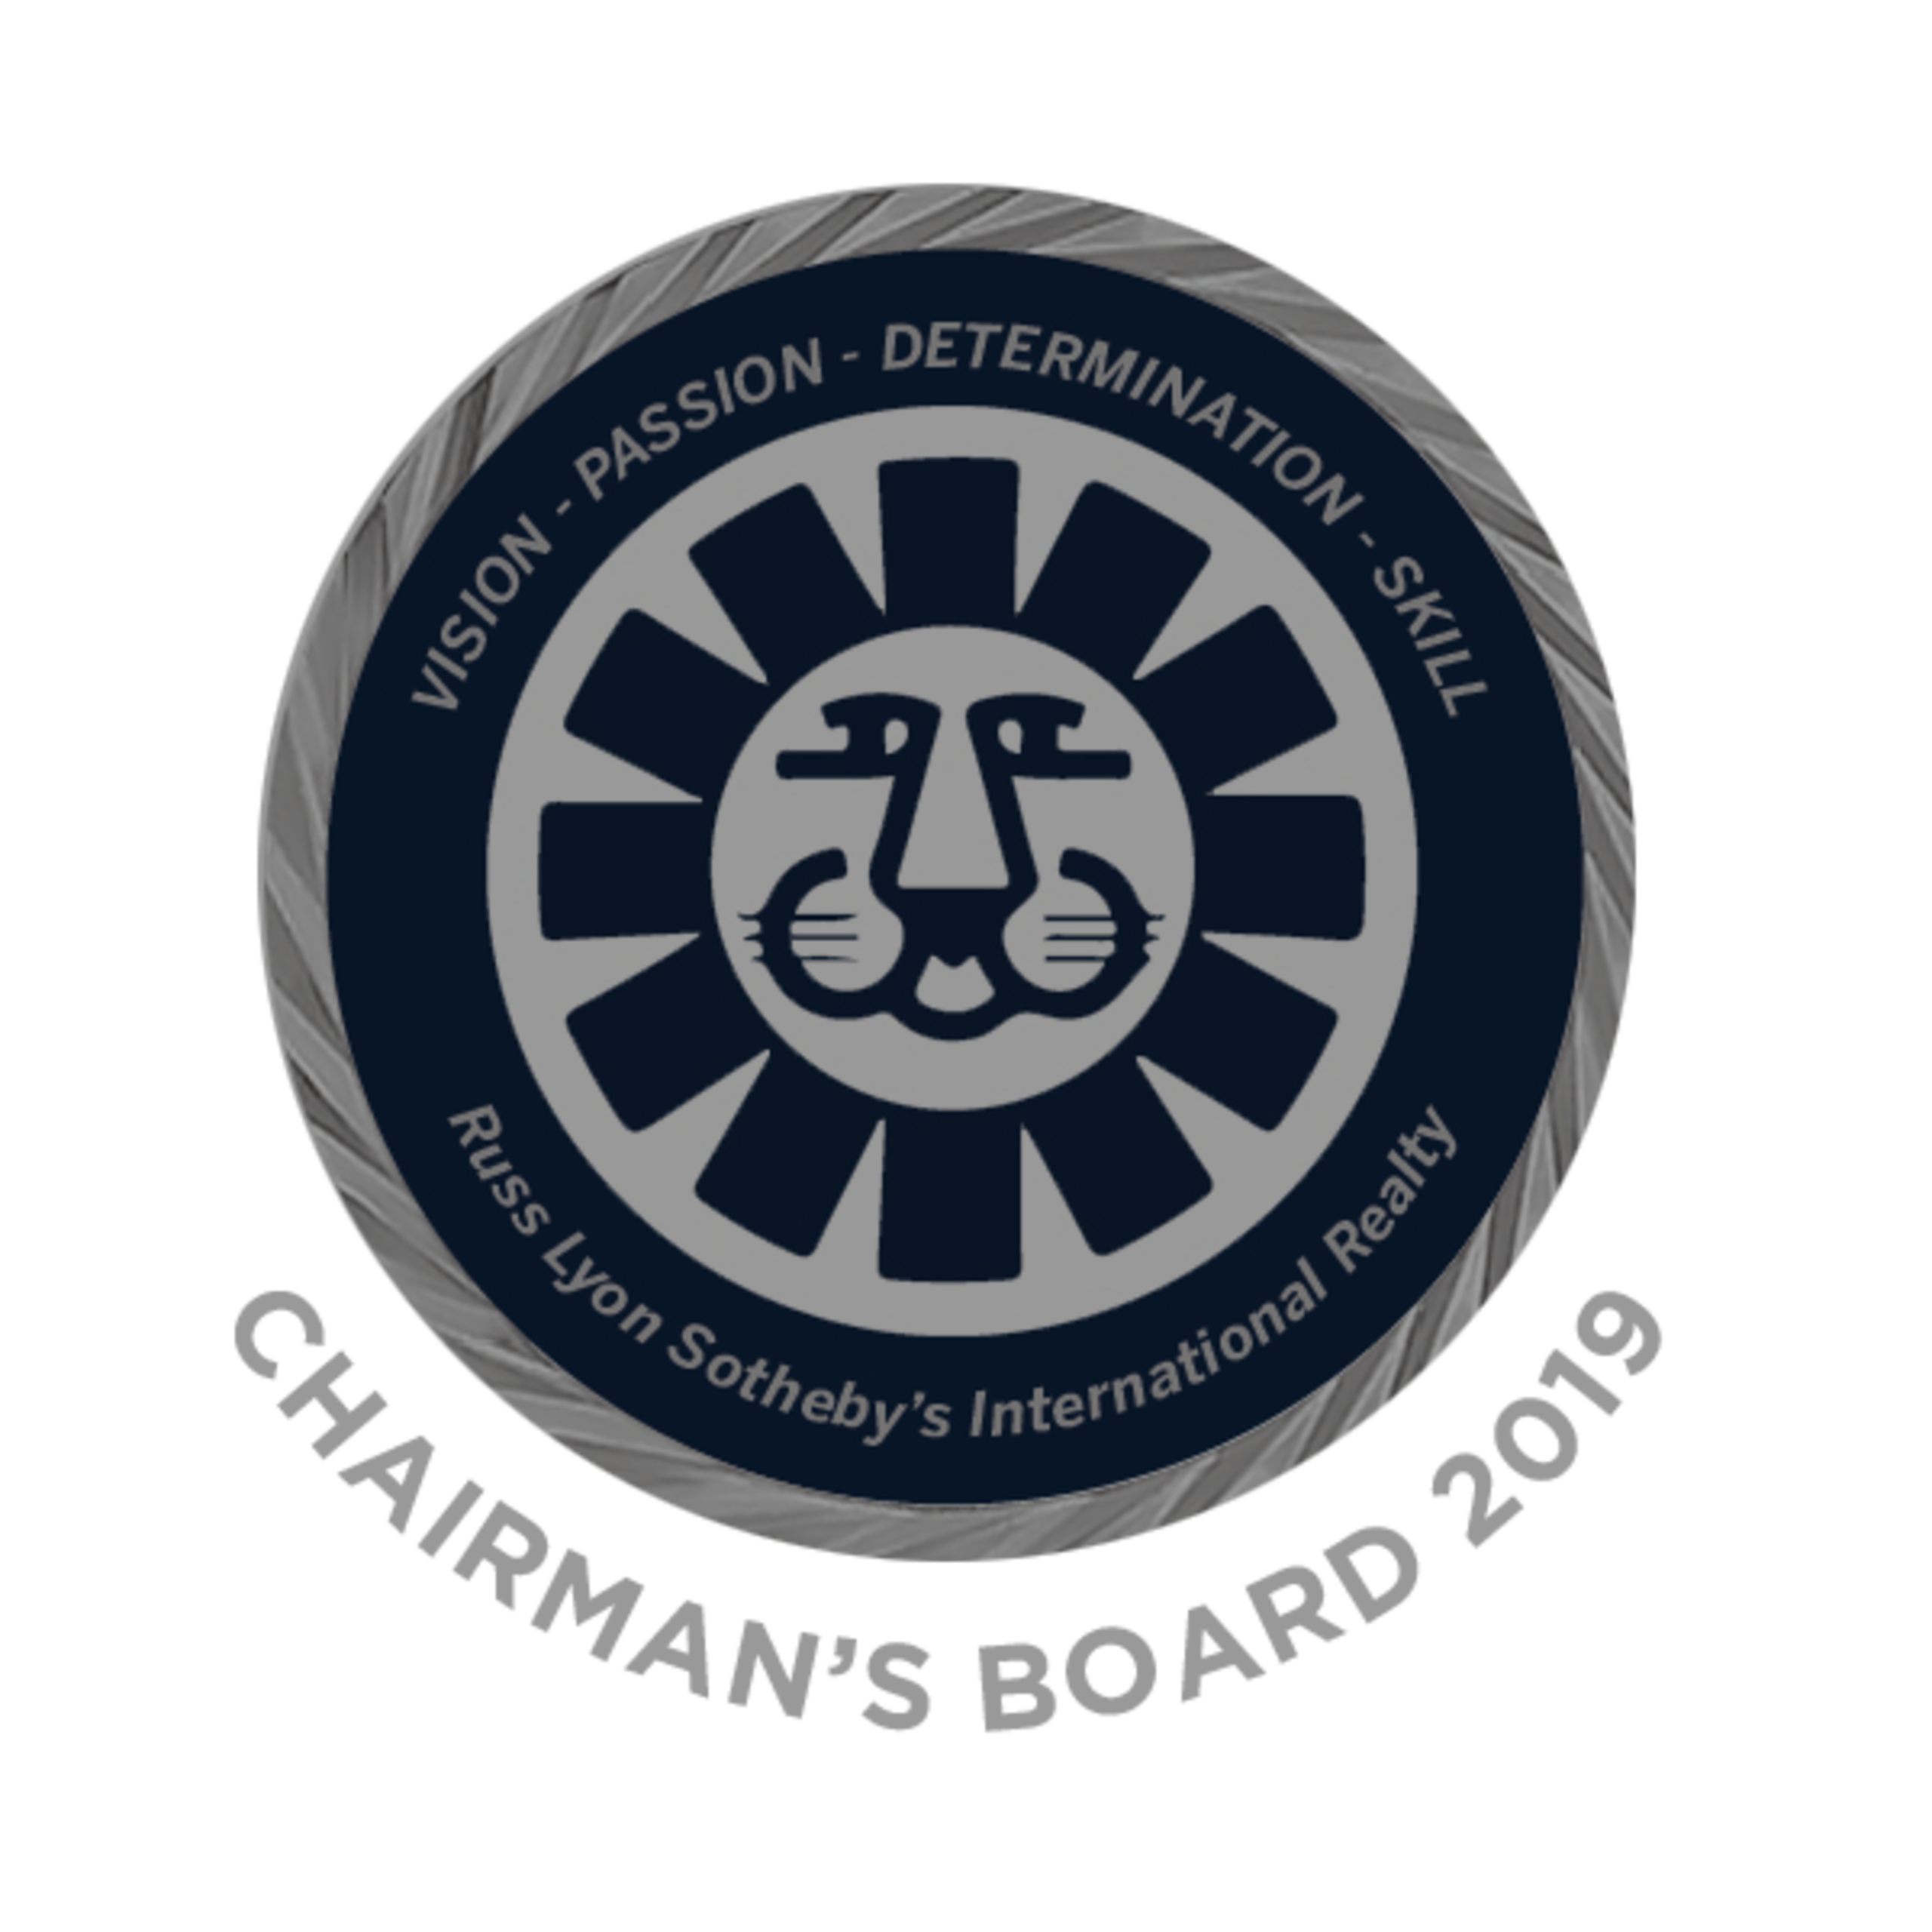 Chairman's Board Award 2019